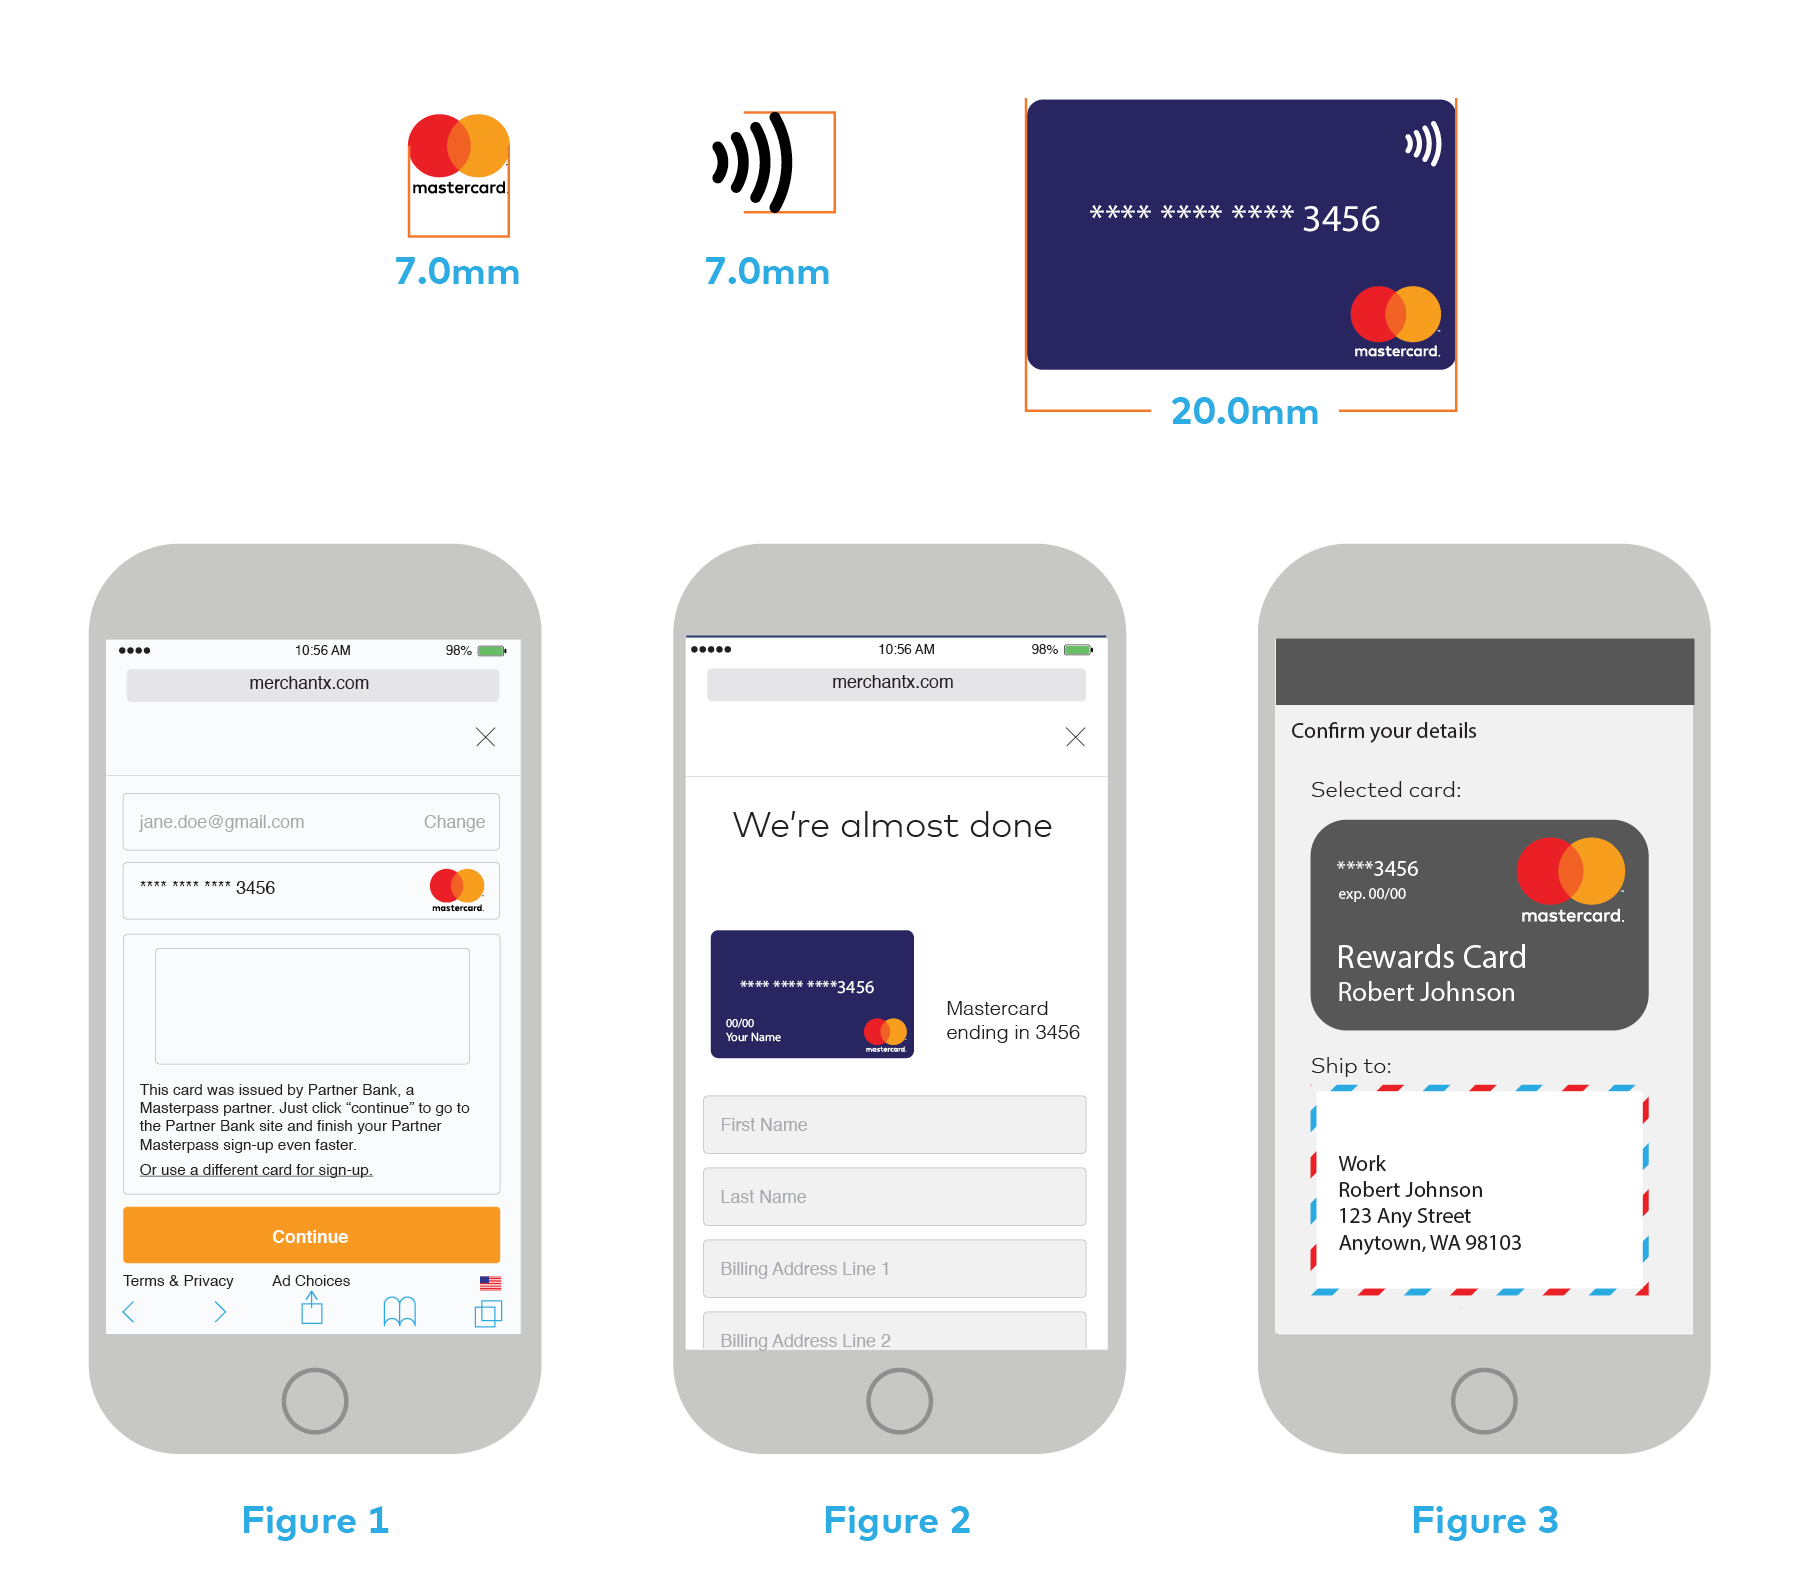 Images of using the Mastercard logo in digital applications such as a digital wallet